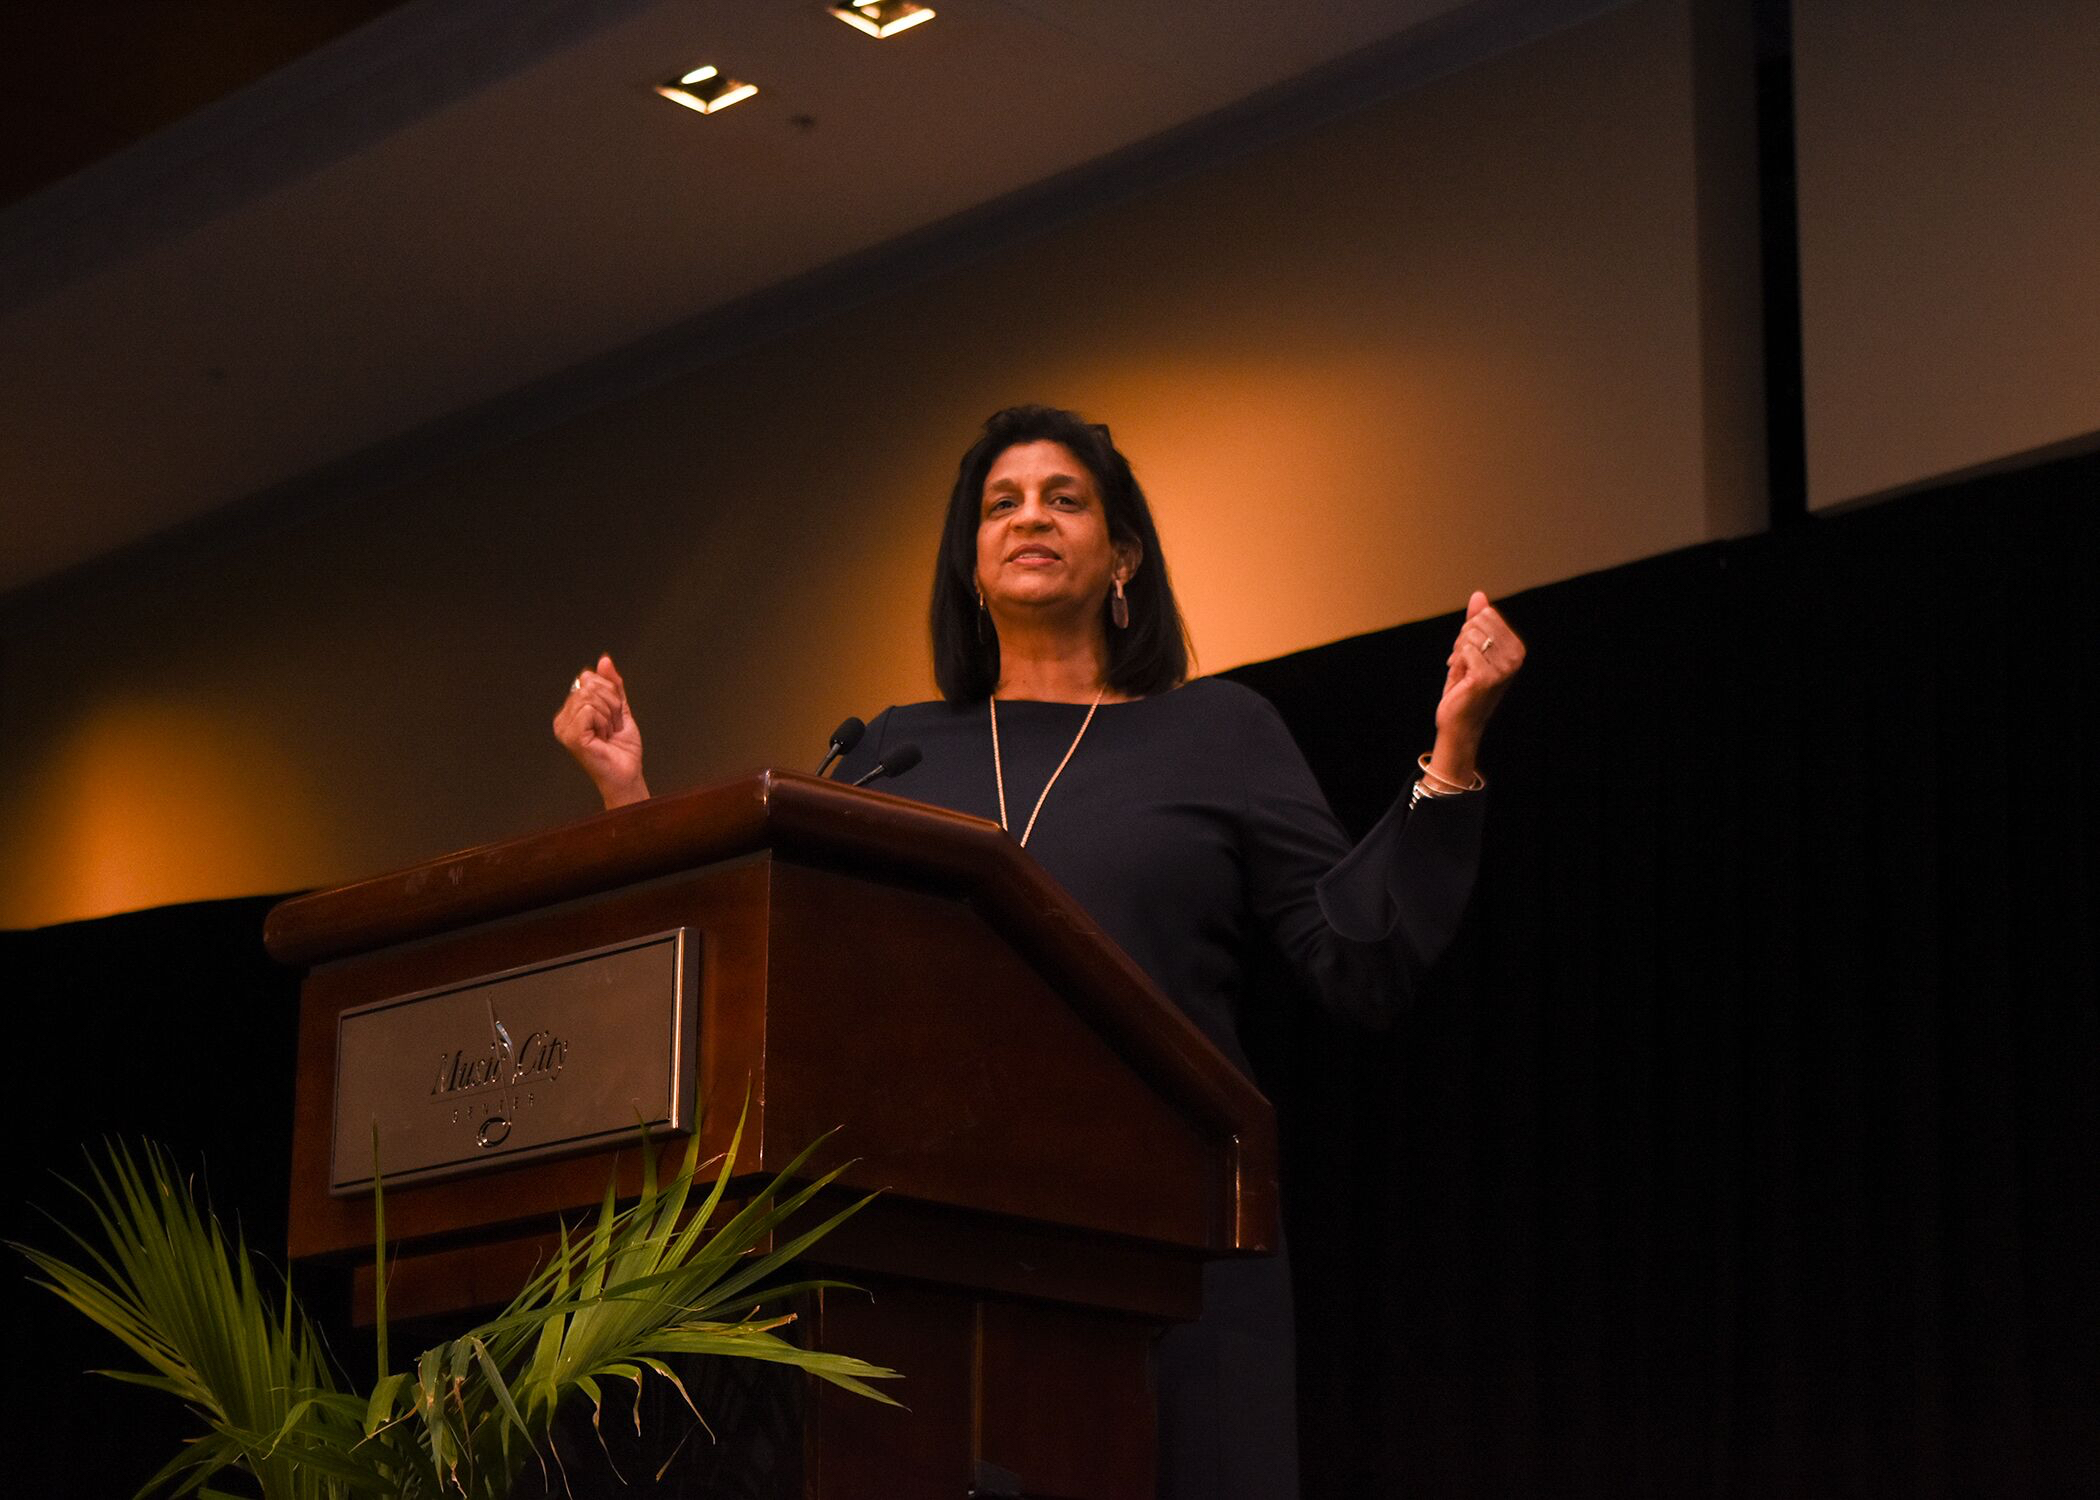 Gail Williams, associate director for community relations speaking at the Francis S. Guess Bridge to Equality Luncheon. (Photo by Morgan Yingling)